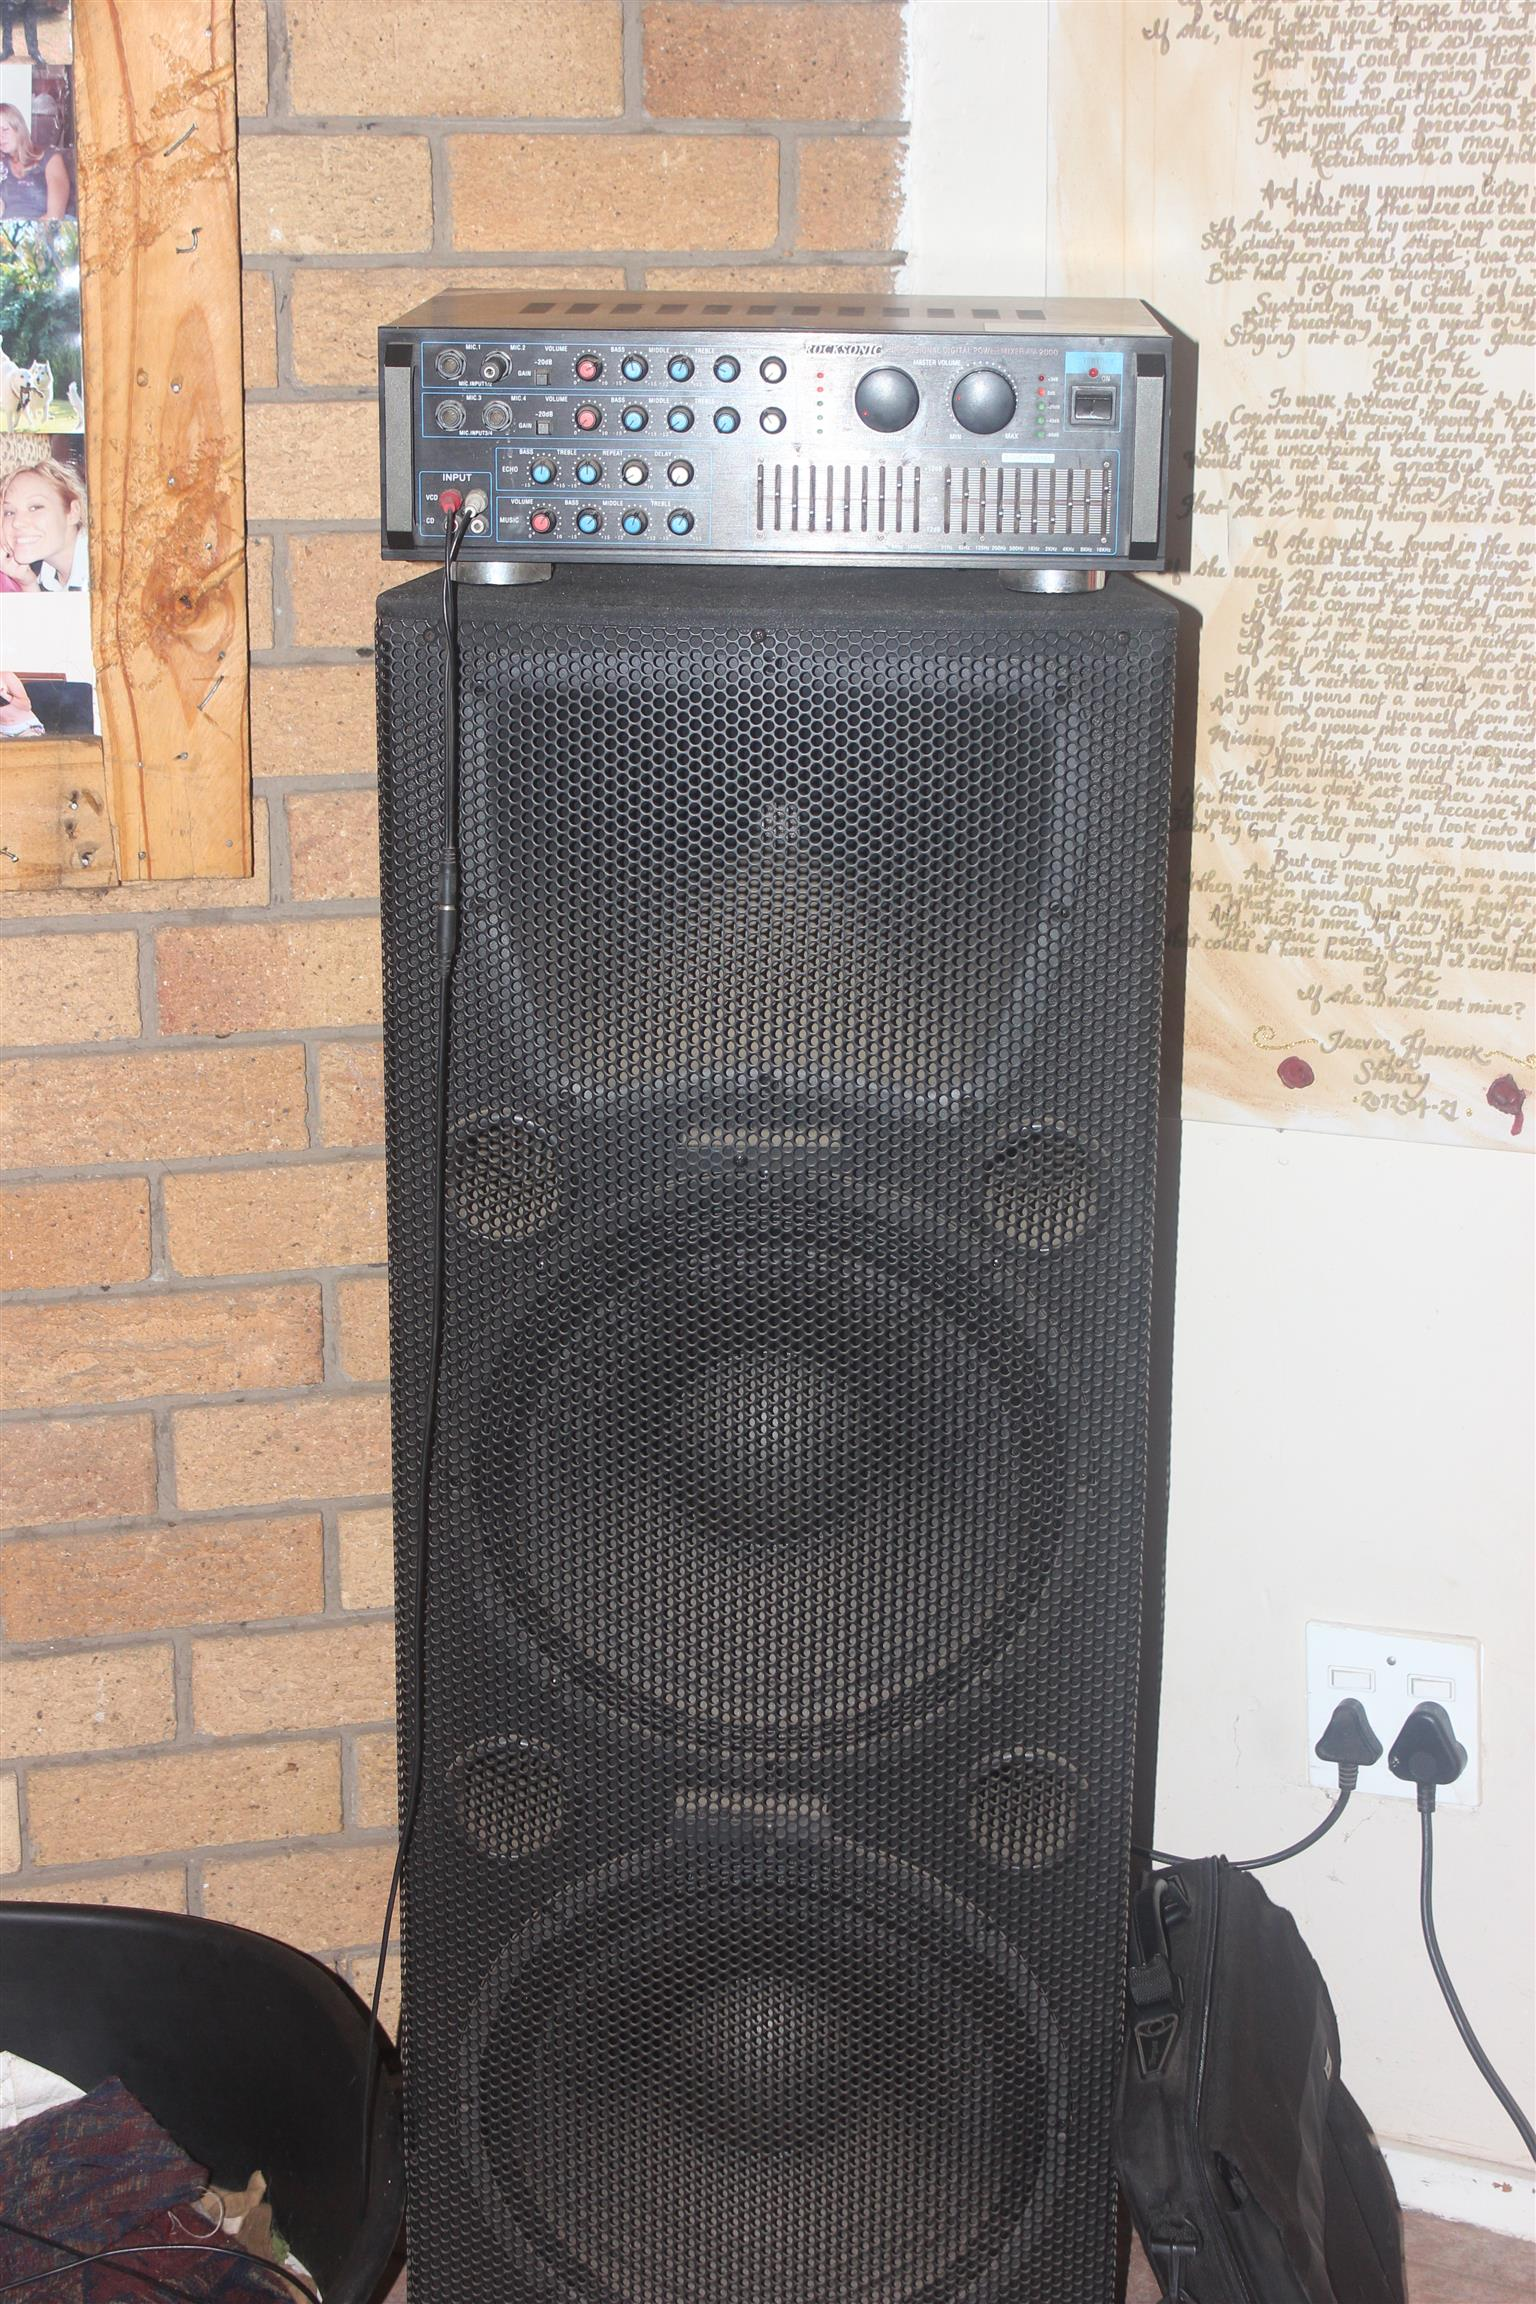 2 x Double 15inch sub Hybrid speakers + Rocksonic 4 channel amp for sale